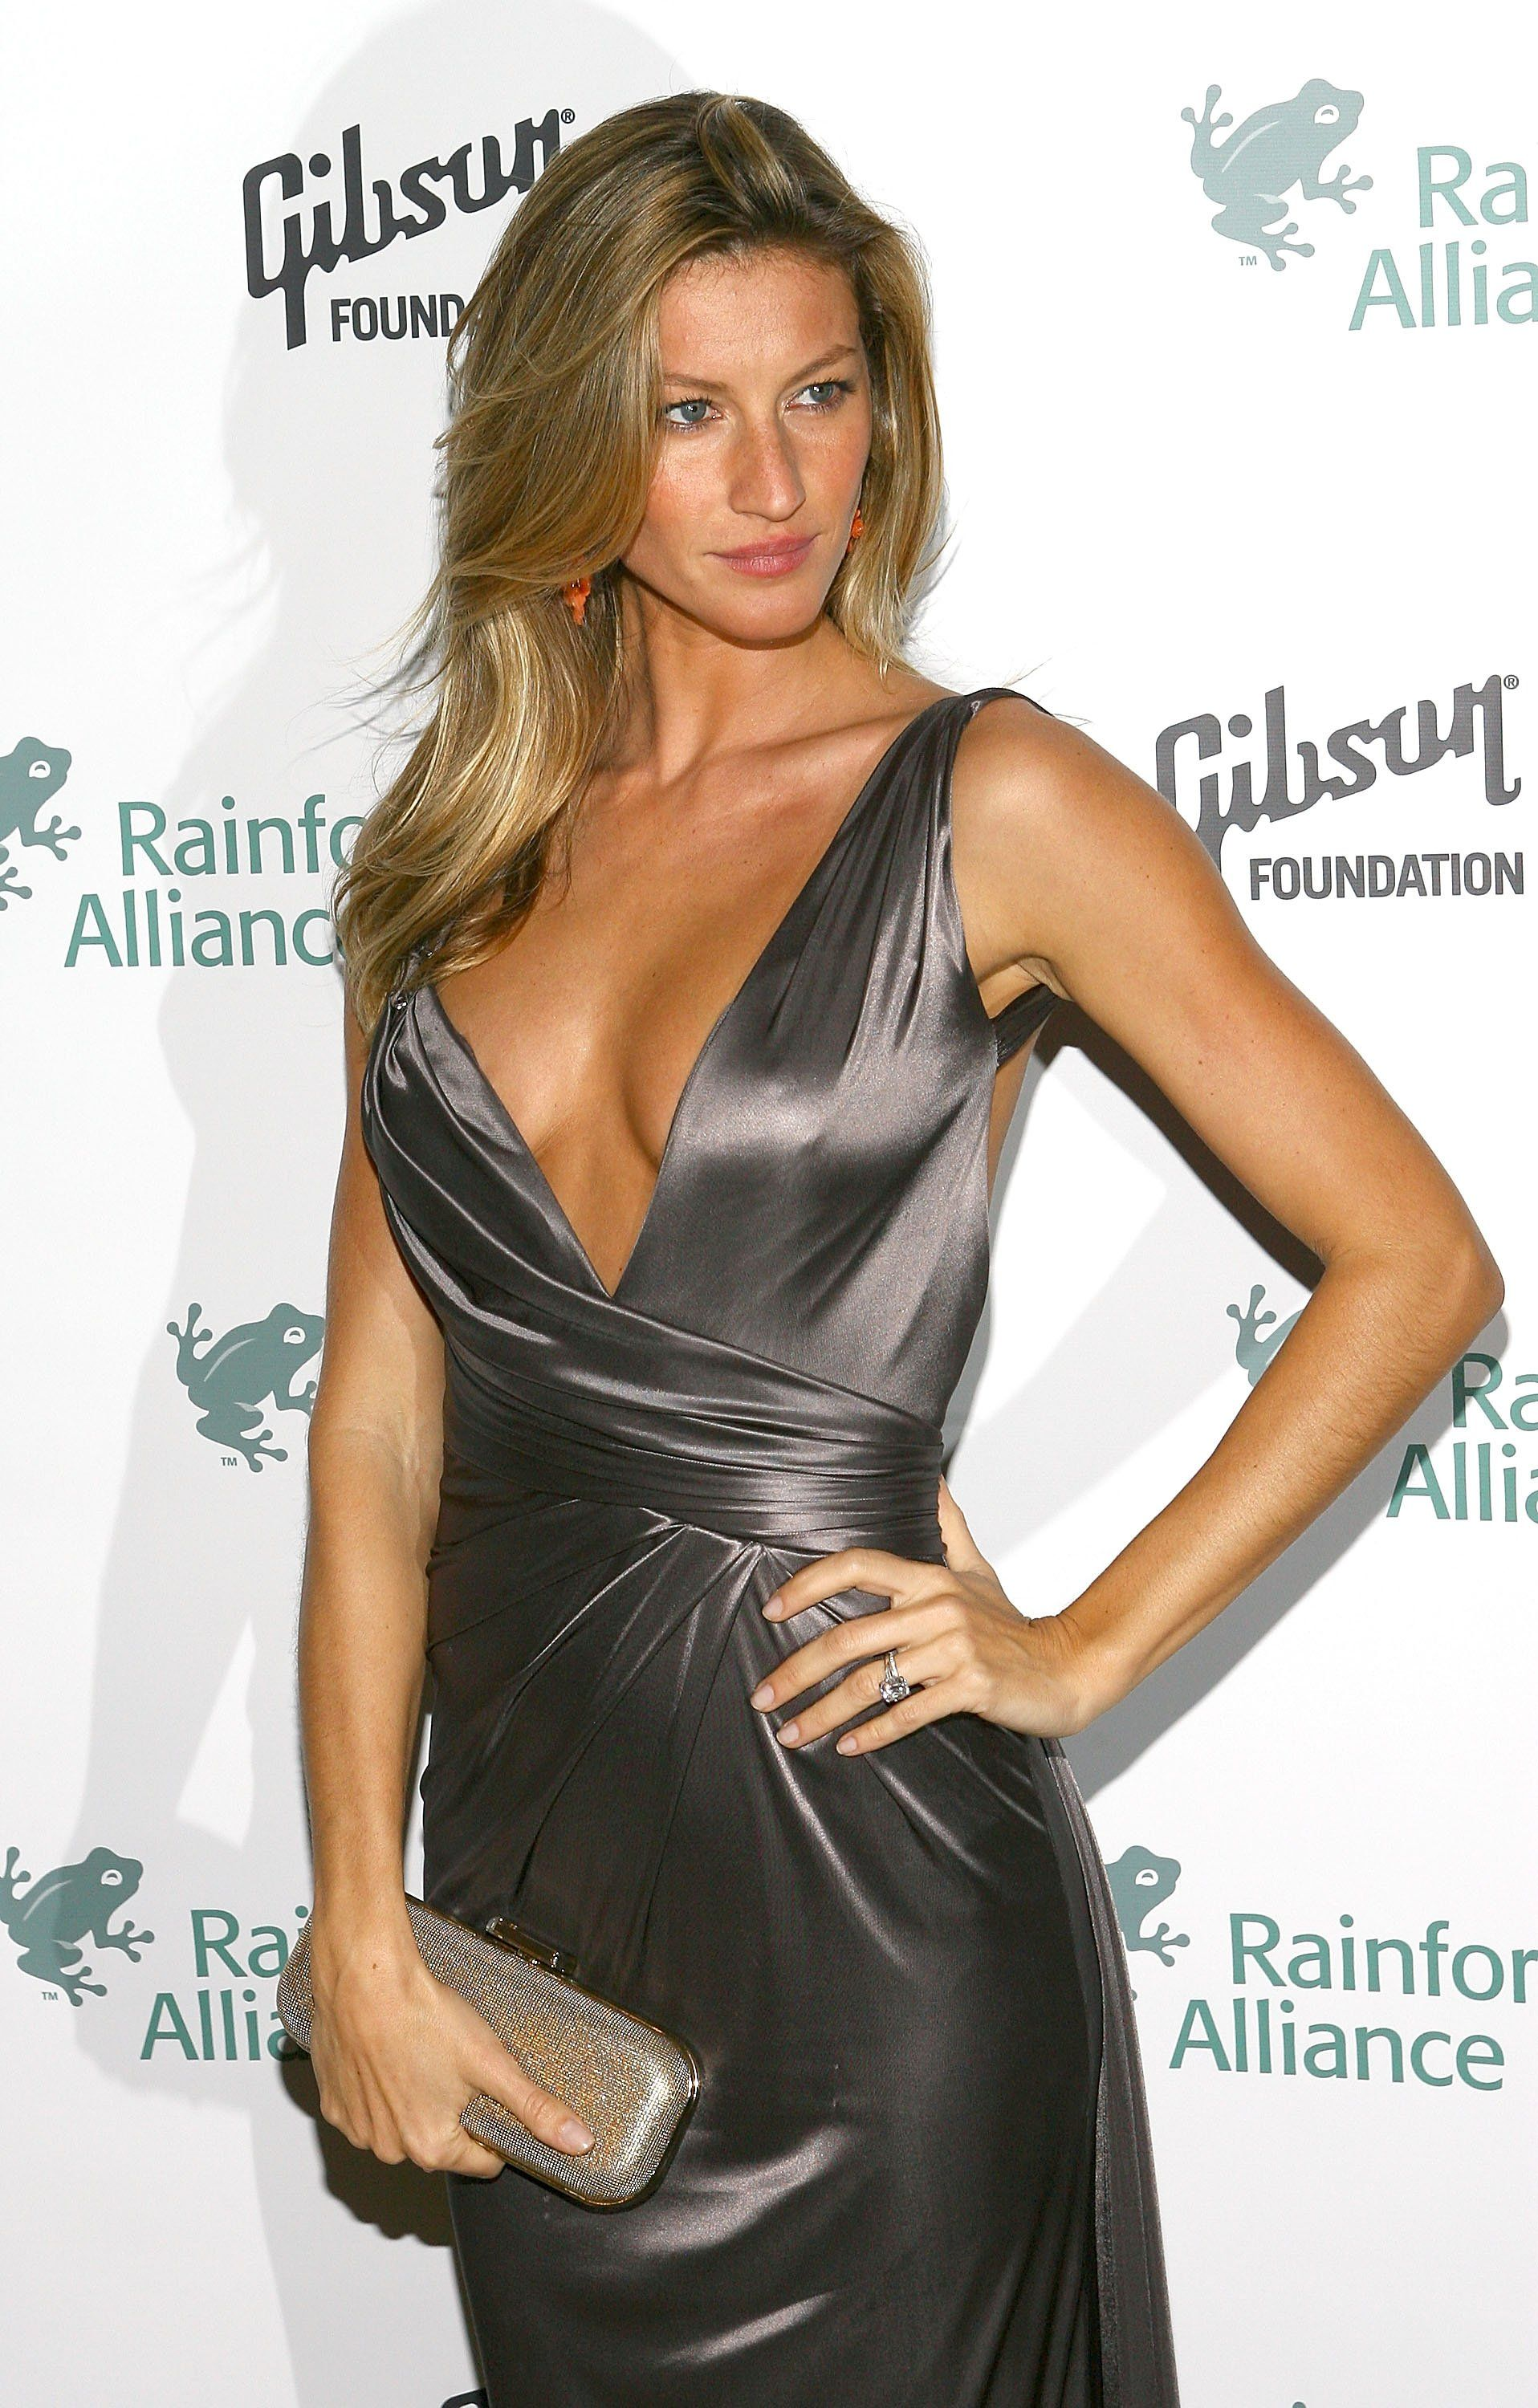 The Best Celebrity Engagement Rings Of All Time Gisele Bundchen Celebrity Engagement Rings Engagement Celebration